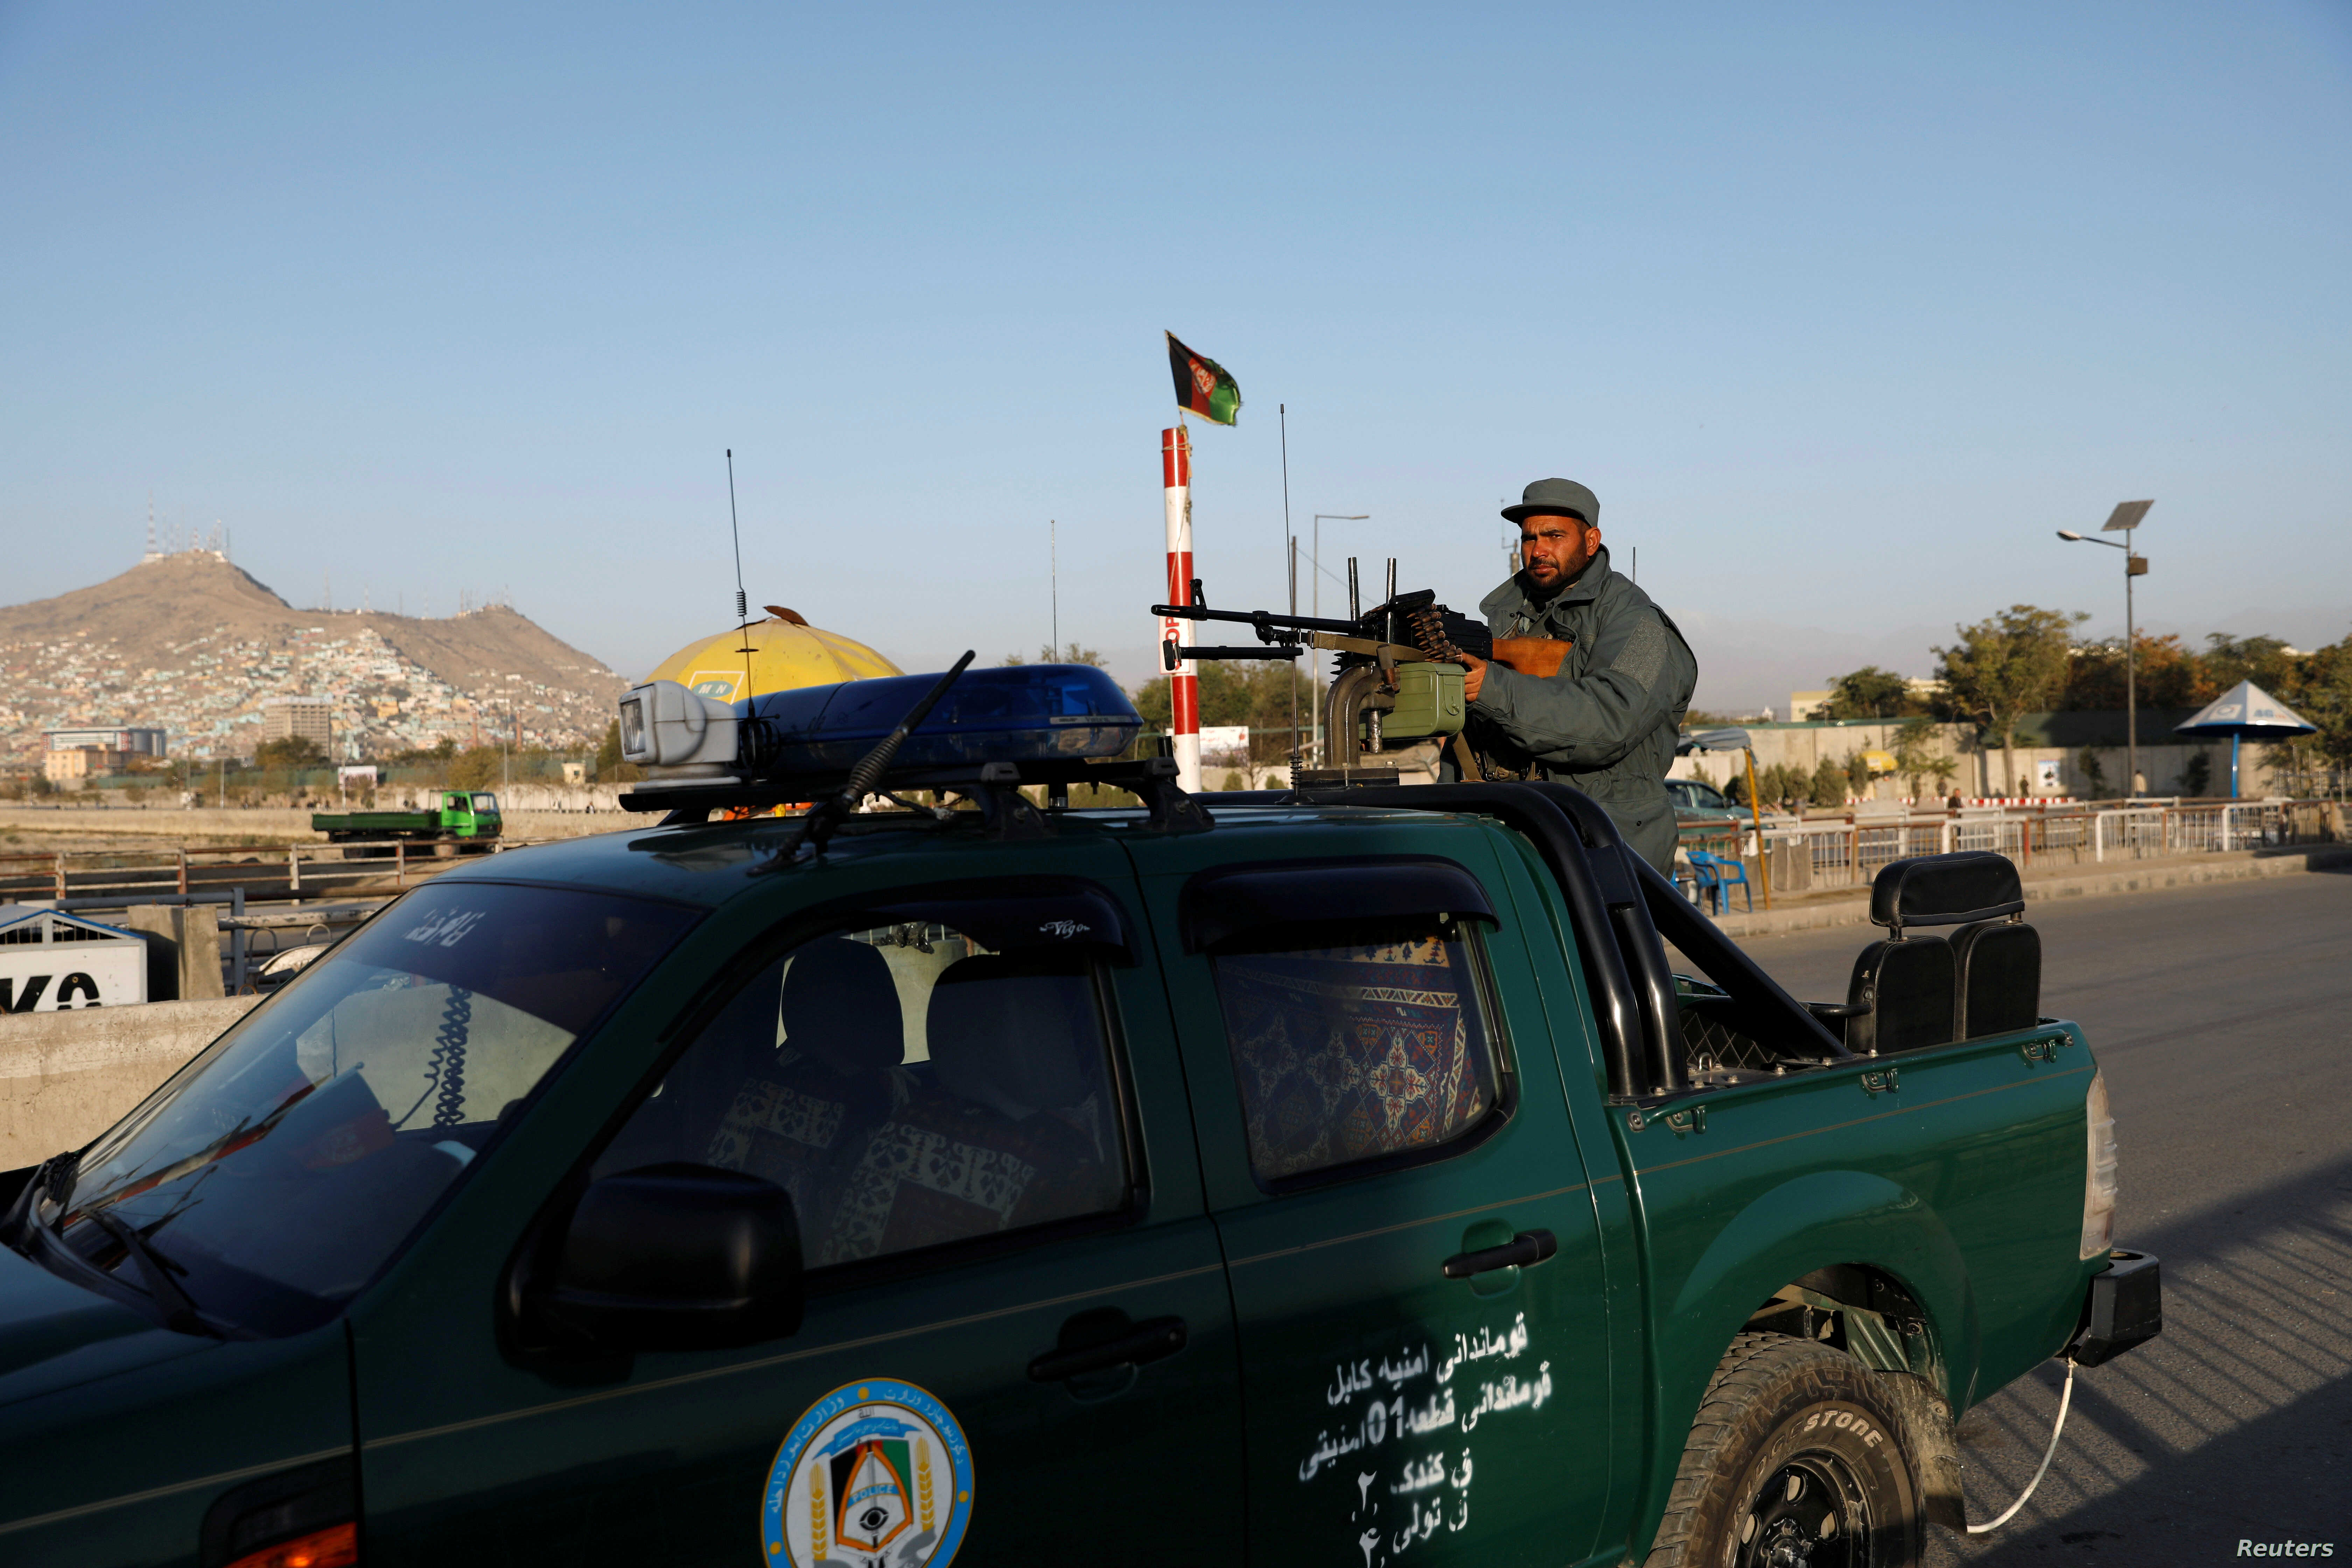 UN: Record Number of Afghans Killed or Wounded During